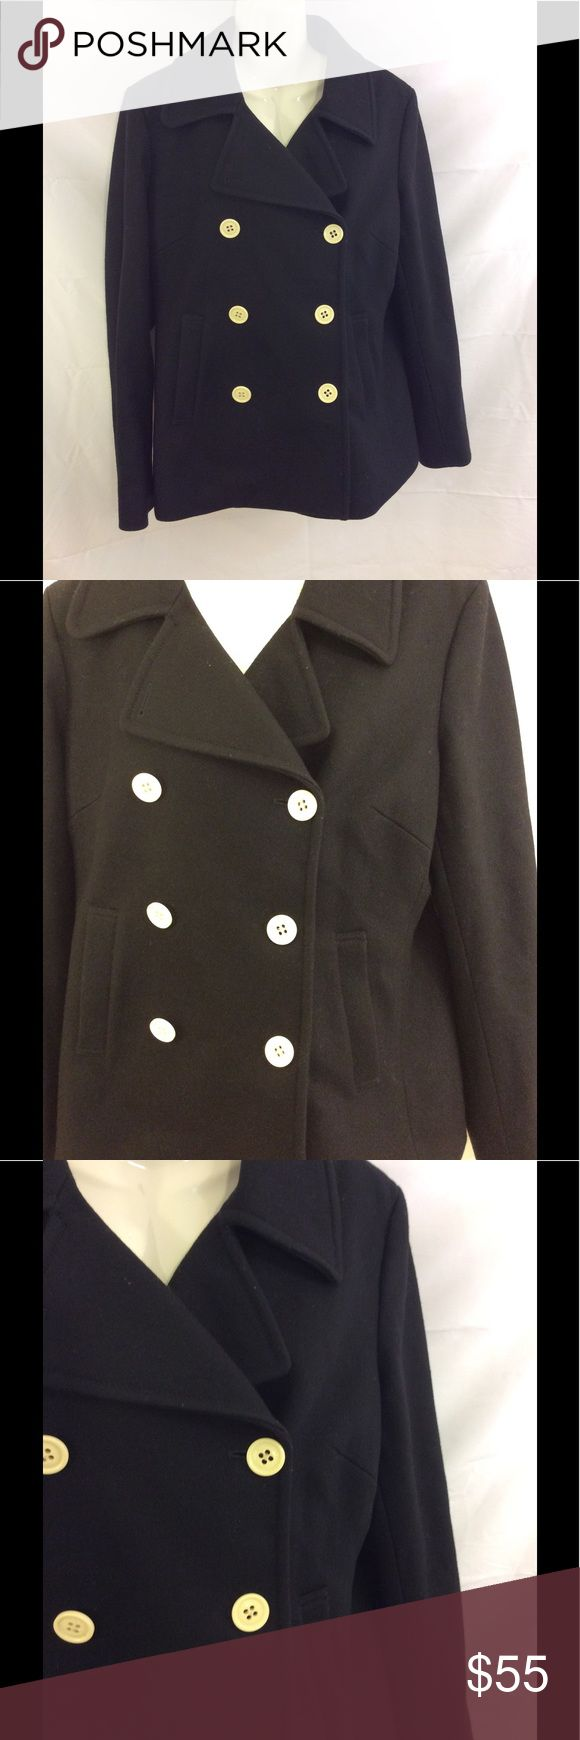 J.crew Black wool double breasted lined pea coat L Excellent used condition J.Crew black pea coat Double breasted Cream colored buttons Two front pockets Removable lining Size large Length from top to bottom 29 inches Armpit to armpit 21 inches Arm length 24 1/2 inches Belt in back with double button J. Crew Jackets & Coats Pea Coats